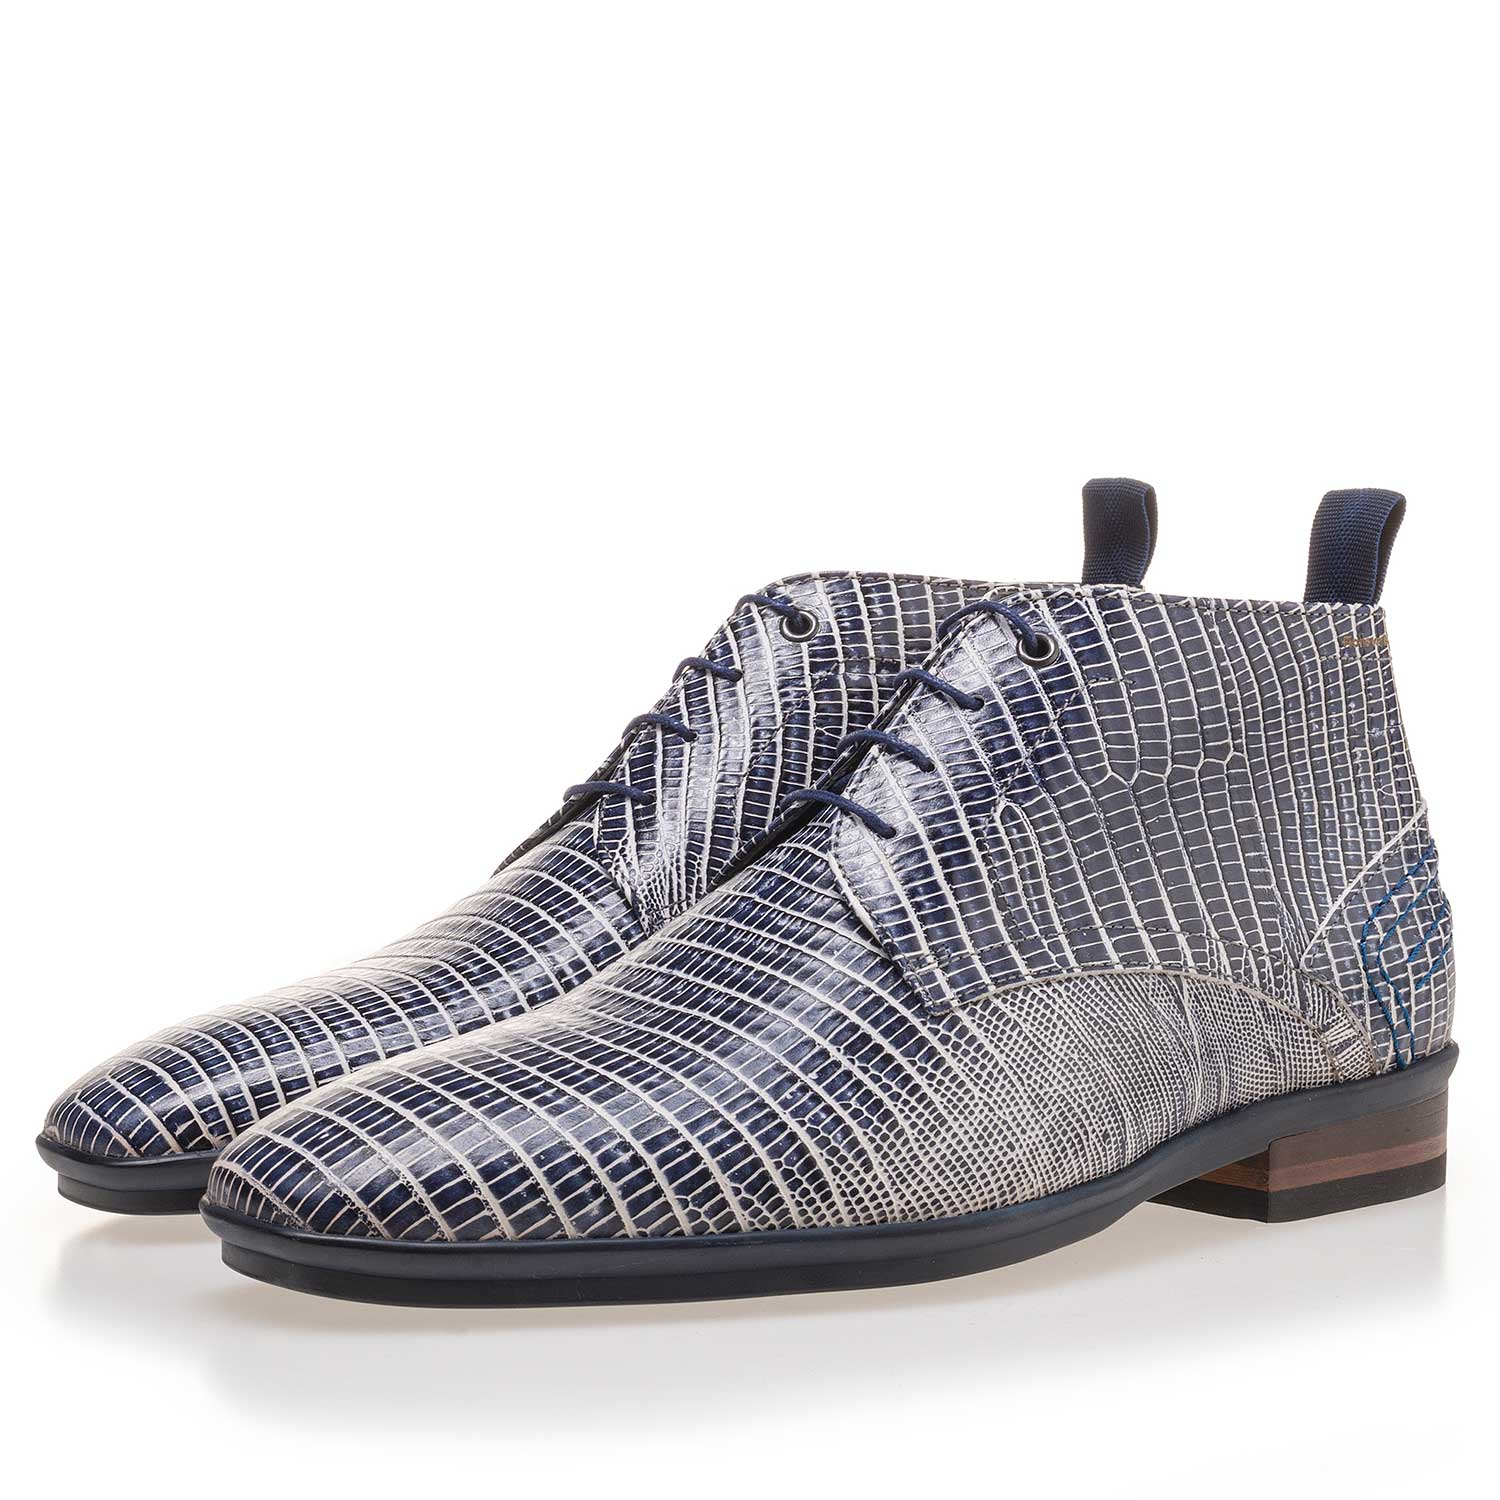 10960/12 - Blue leather lace boot finished with a lizard print